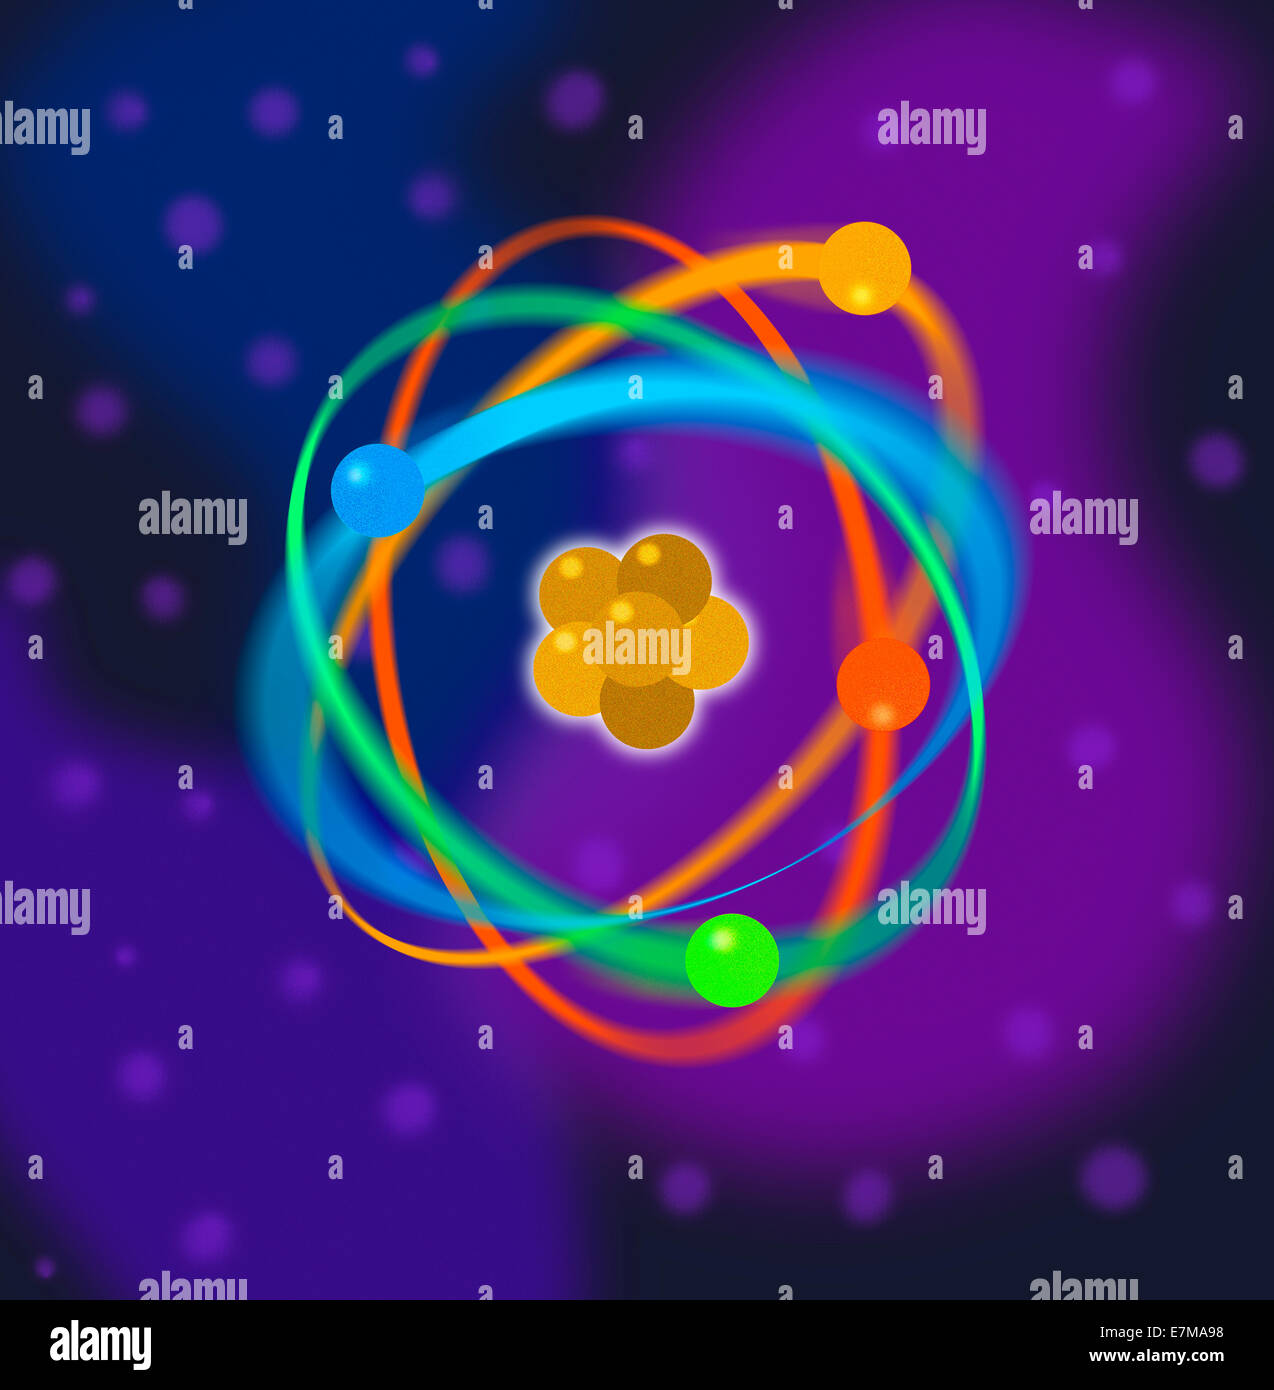 Atomic Structure - Stock Image